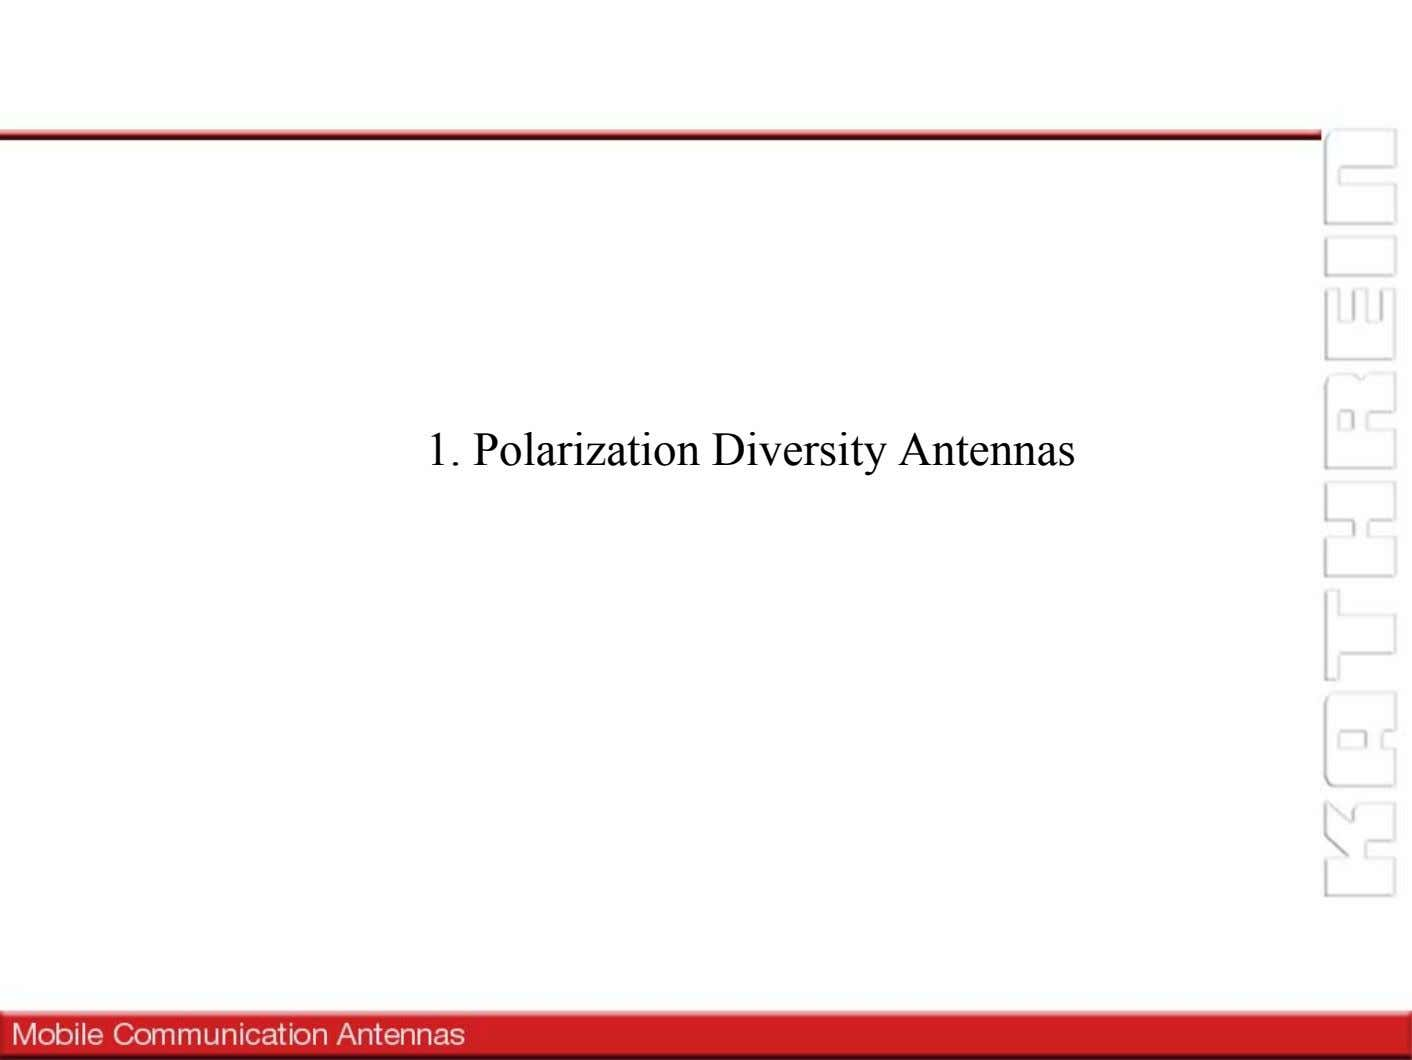 1. Polarization Diversity Antennas